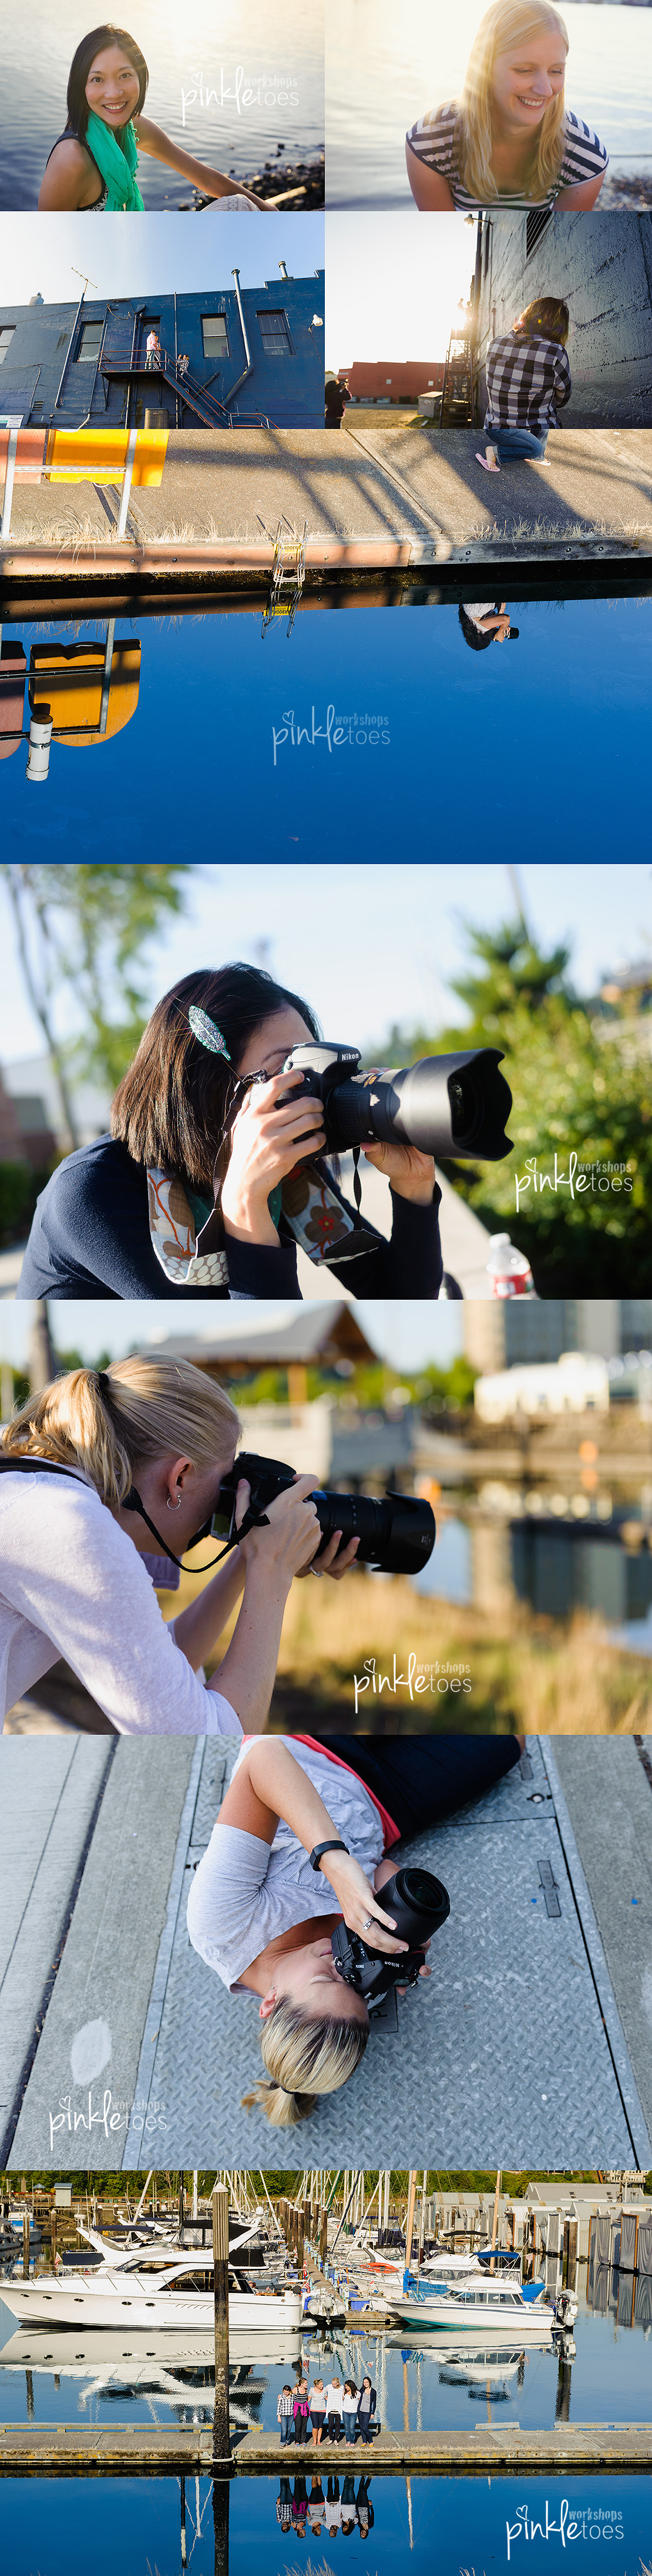 bts-pinkle-toes-photography-workshops-behind-the-scenes-australia-sydney-washington